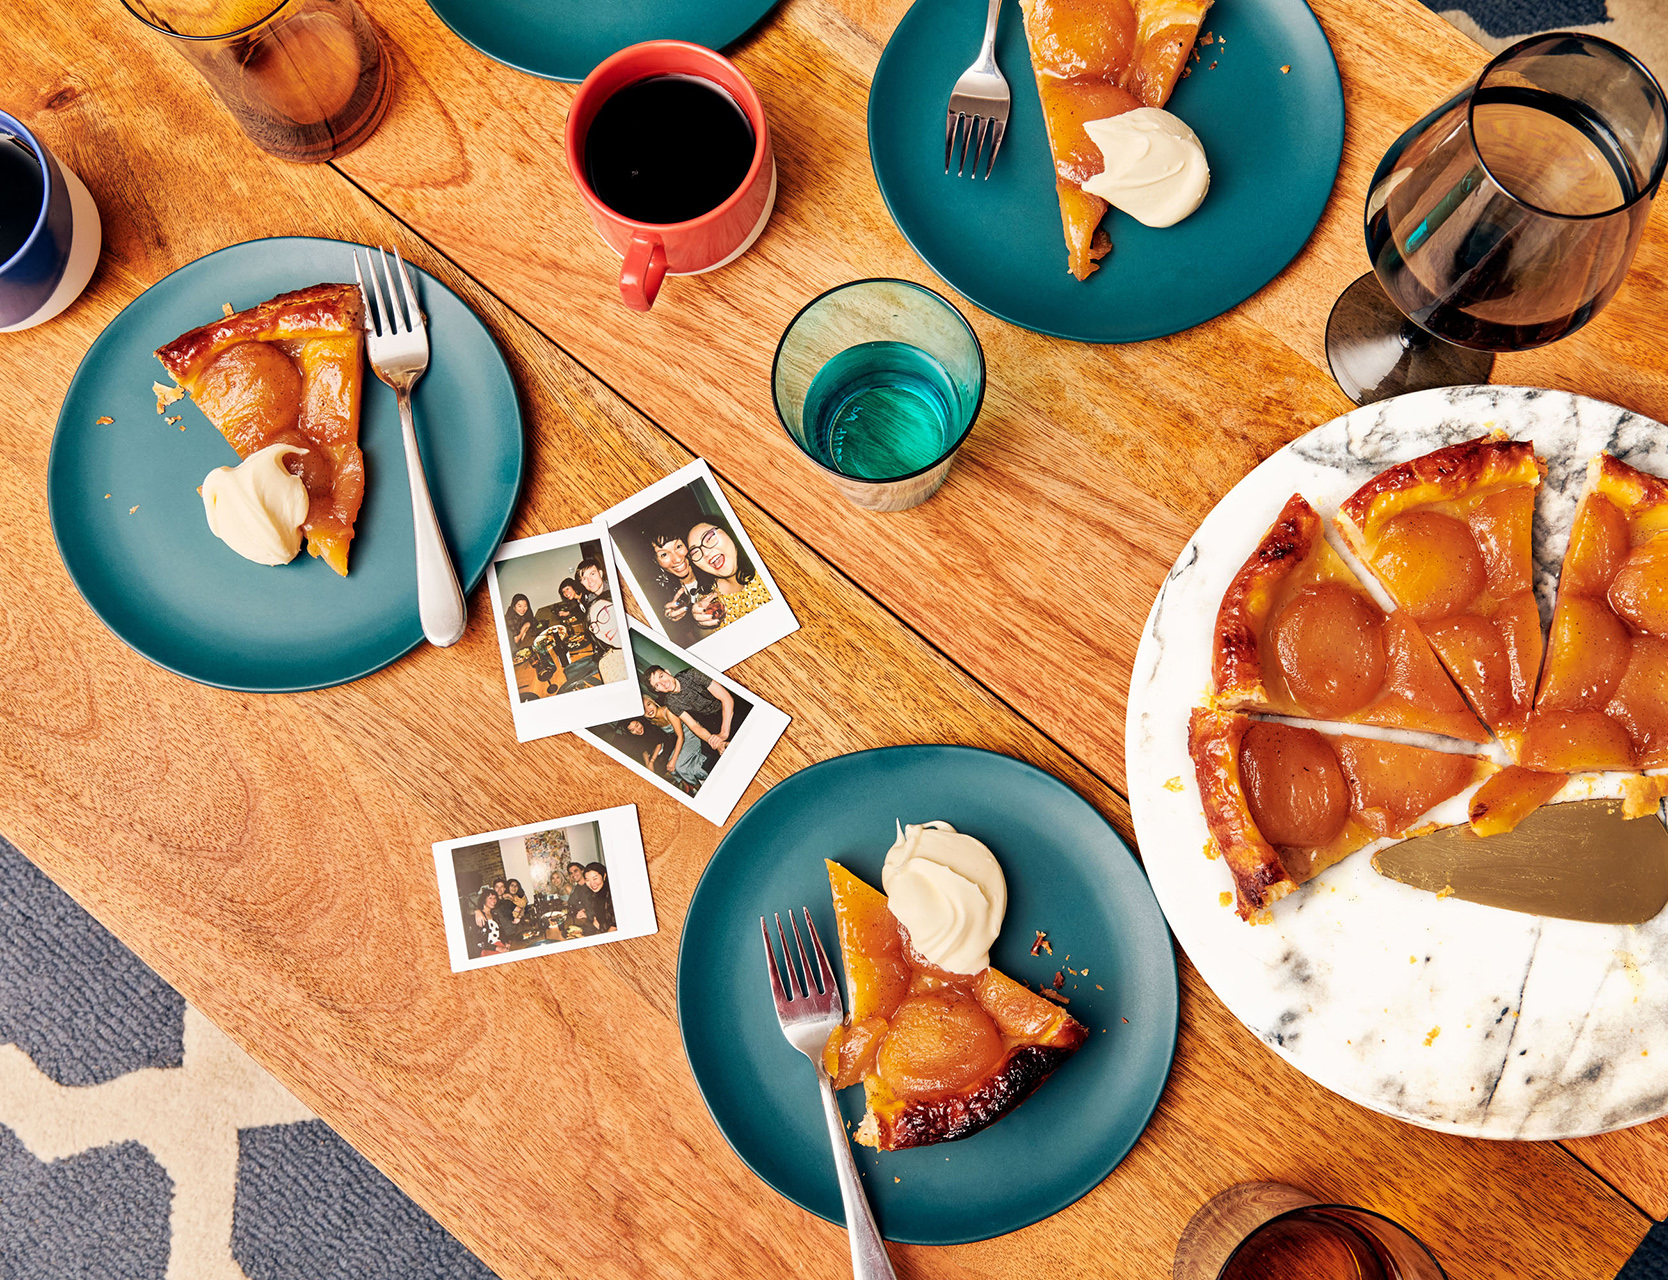 desserts and polaroids on table